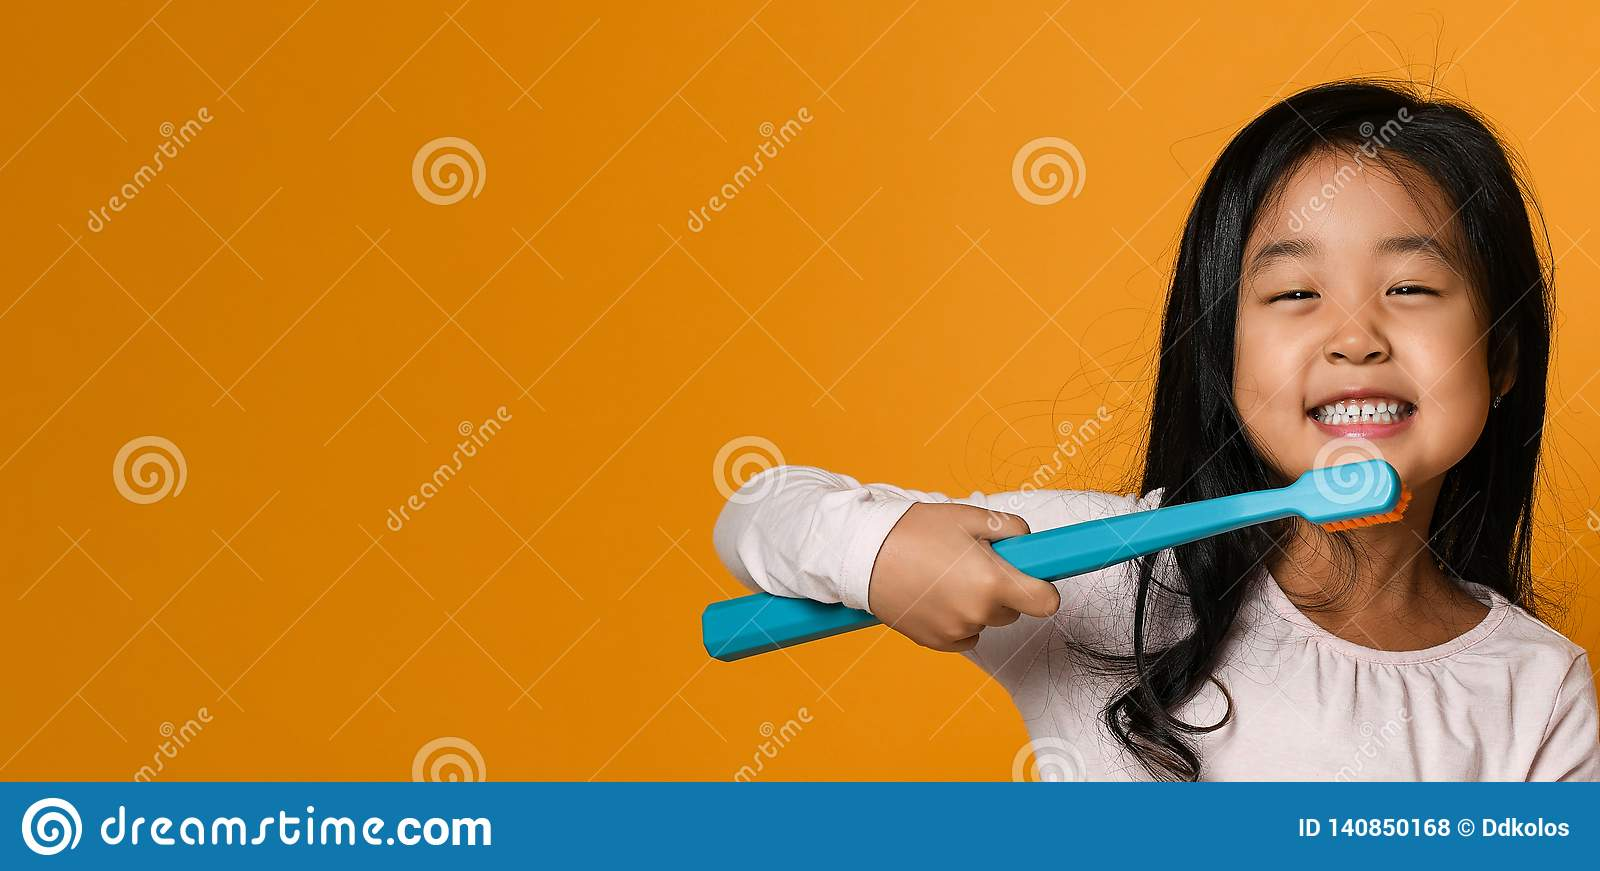 Portrait of a little girl holding a tooth brush over yellow background